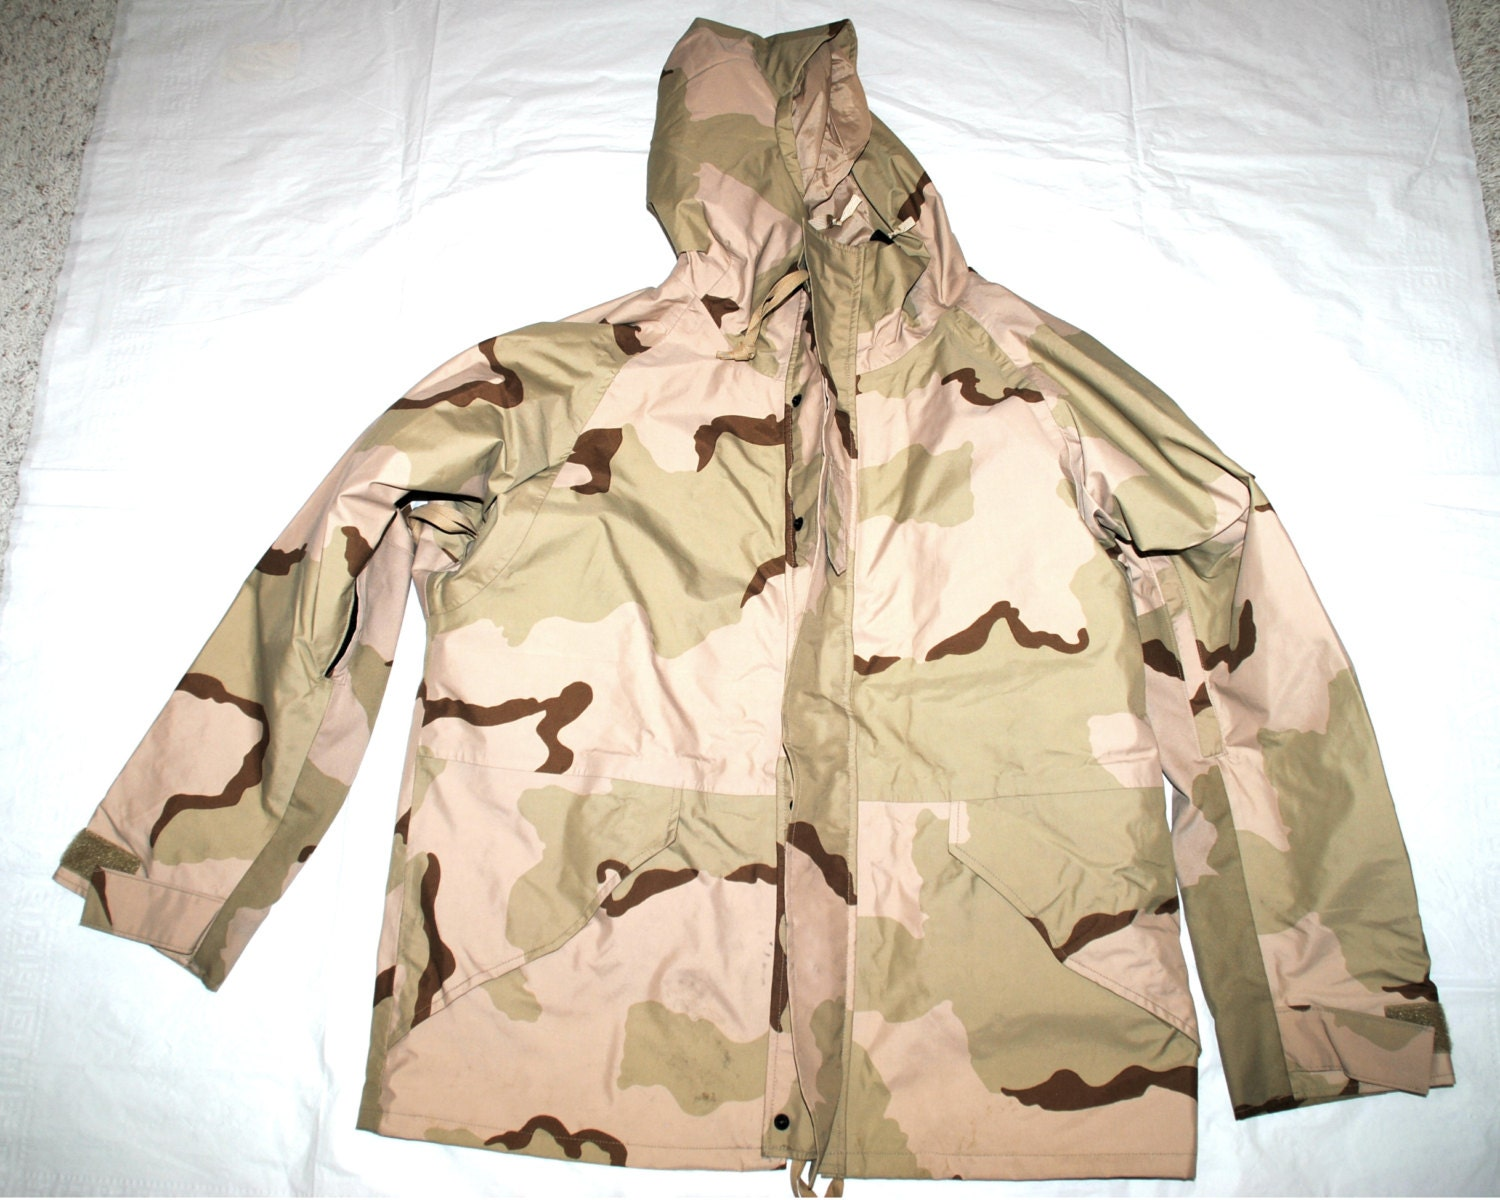 1995 US Army Issue - ECWCS Camouflage Gore tex désert Camouflage ECWCS froid Parka - grand ordinaire 0f31d4